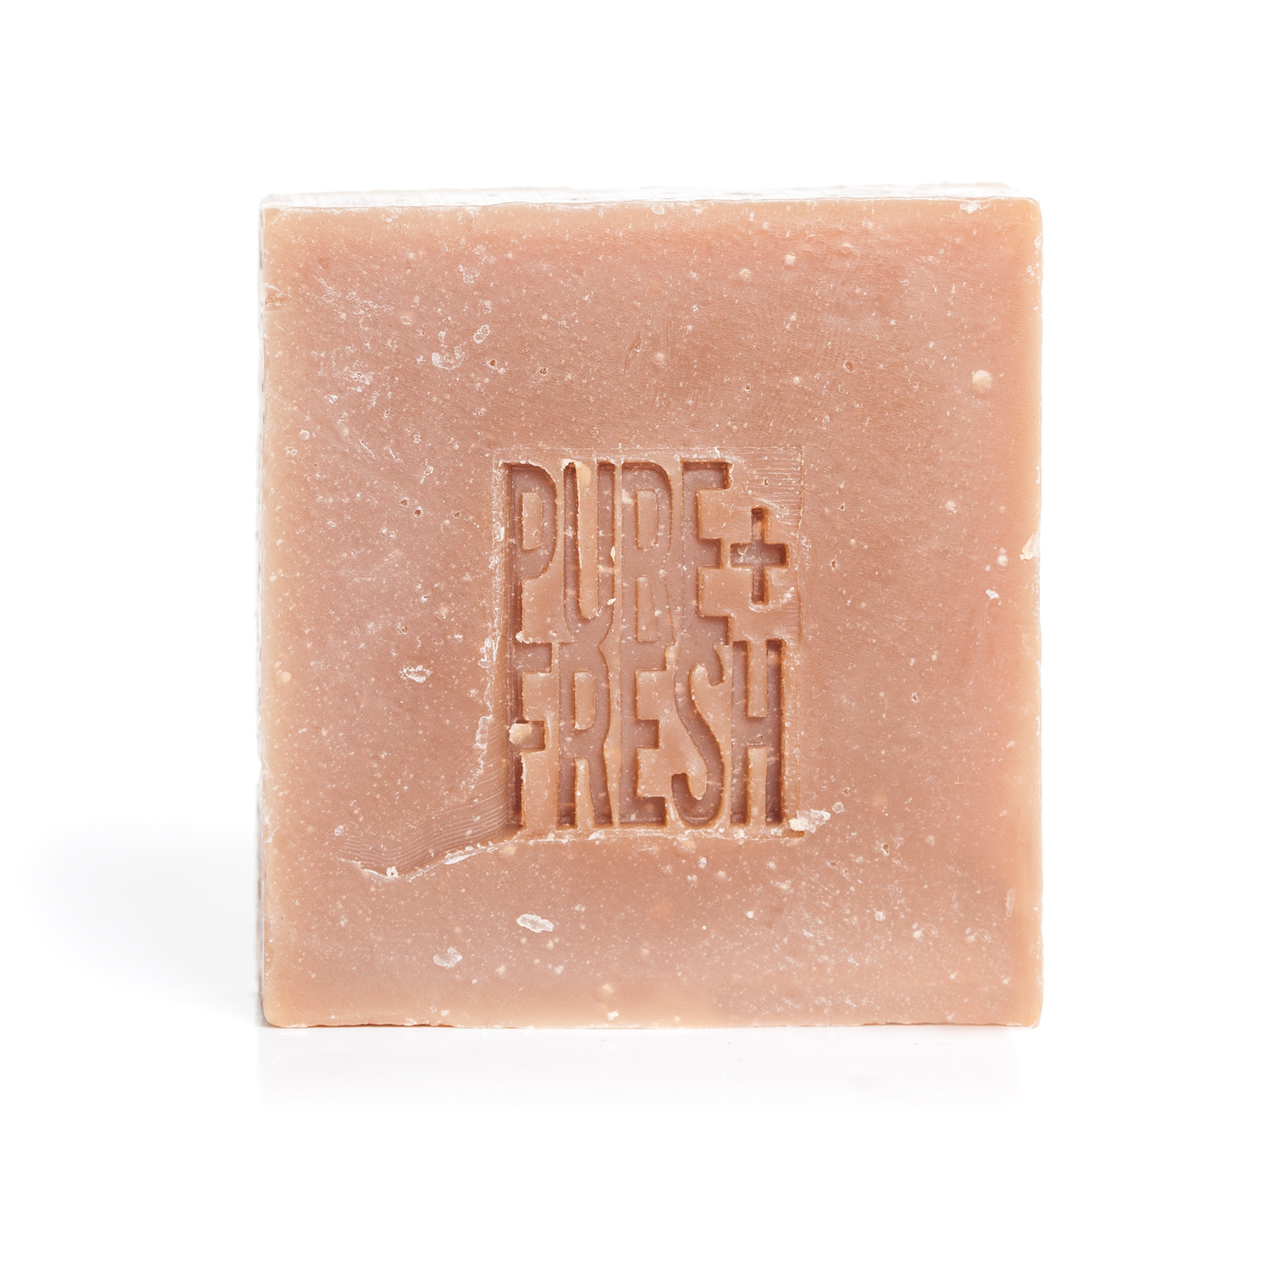 5oz Grapefruit Vanilla Body soap